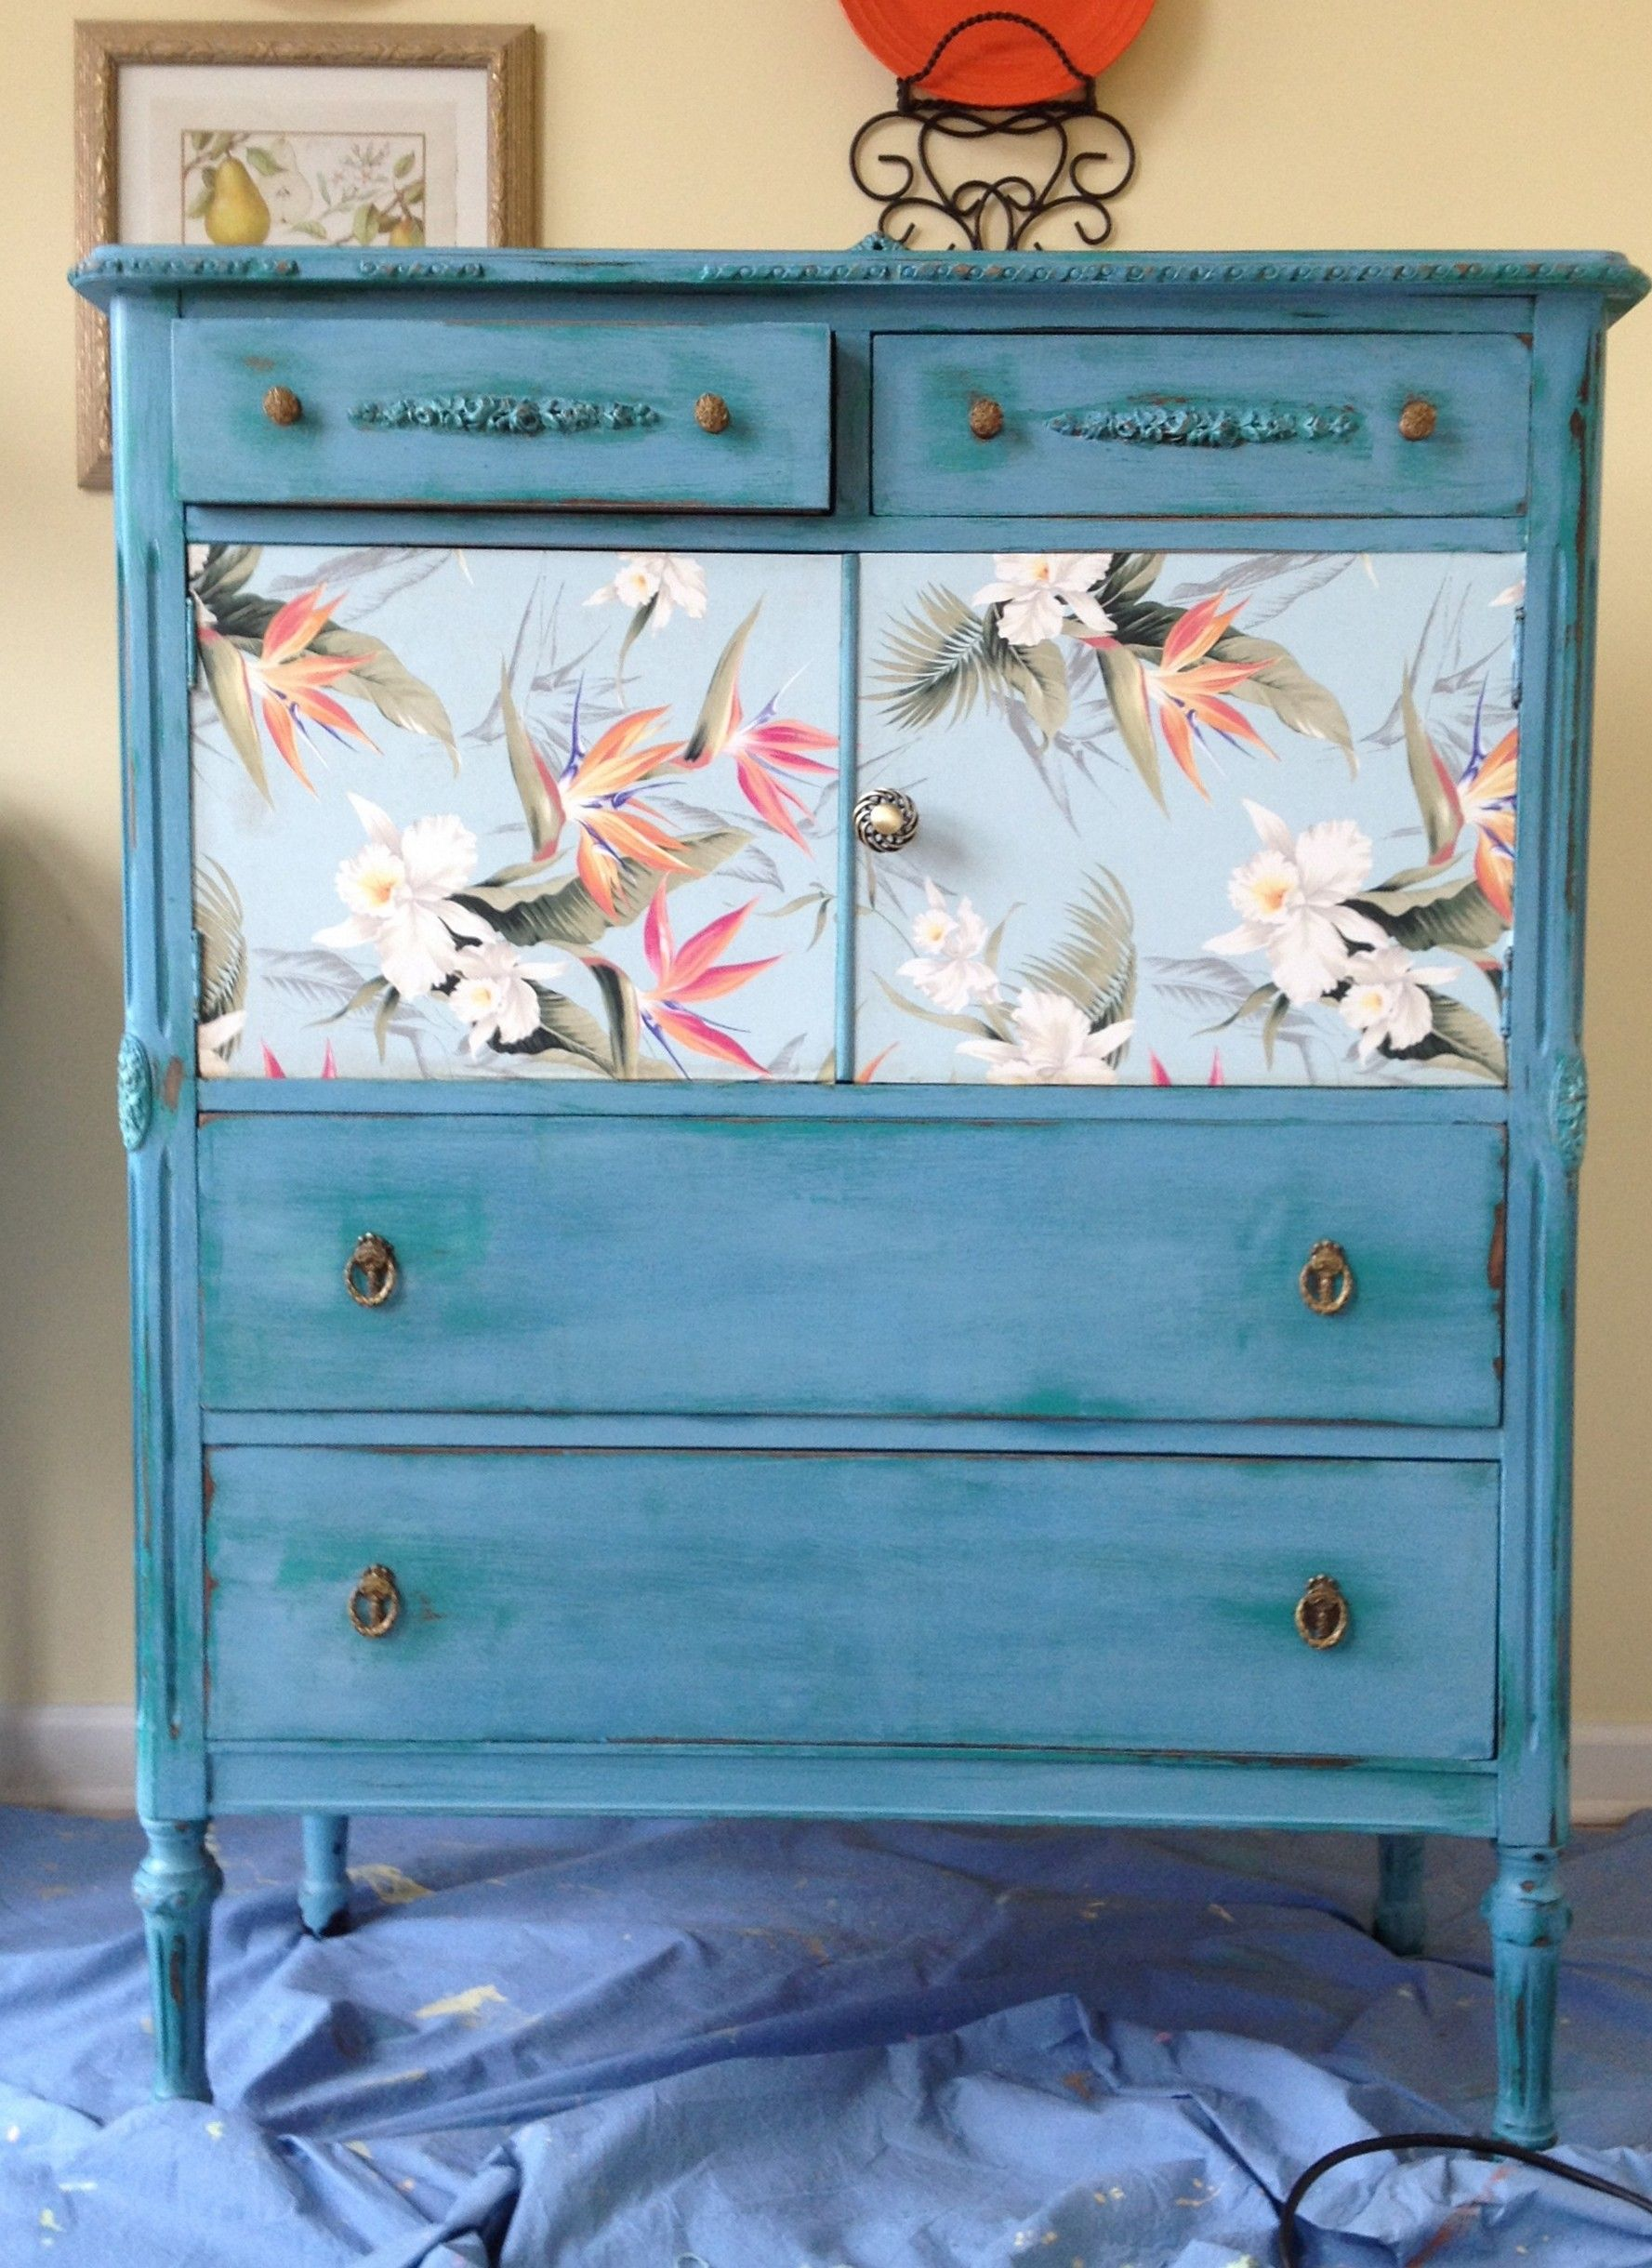 10+ Inspiration Of The Painting Old Furniture